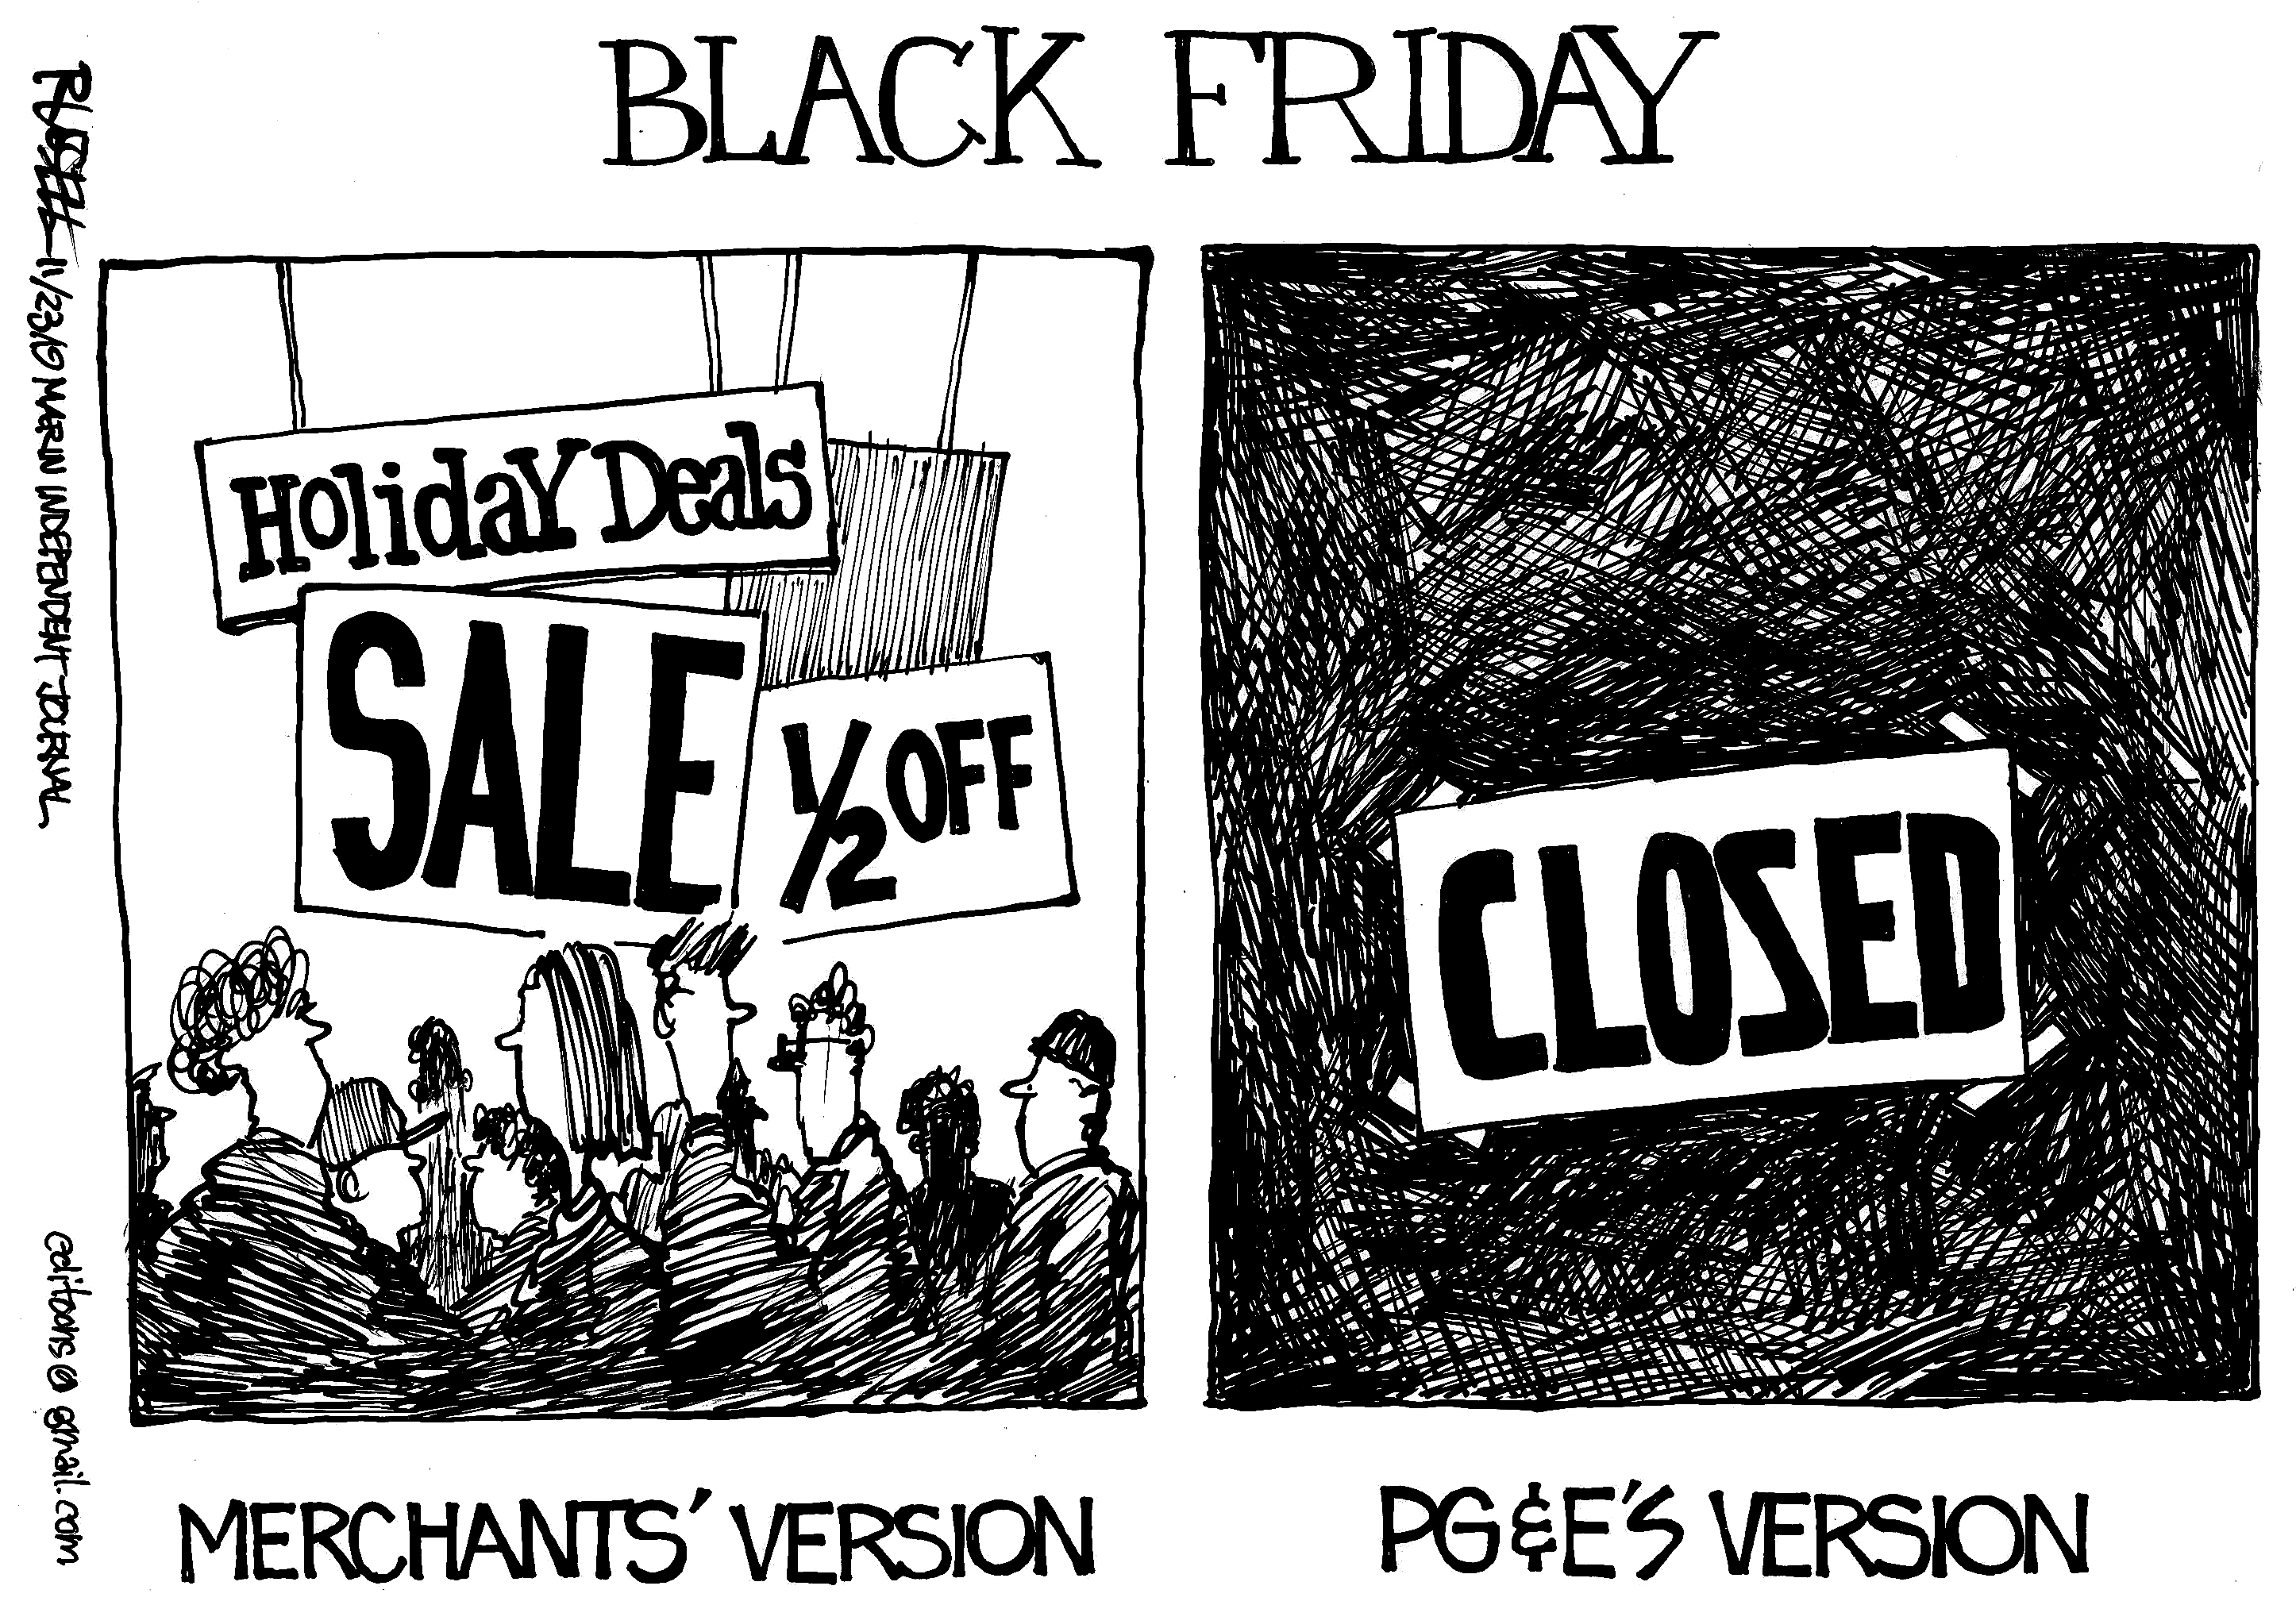 George Russell Don T Let Pg E Turn Black Friday Into A Blackout Marin Independent Journal